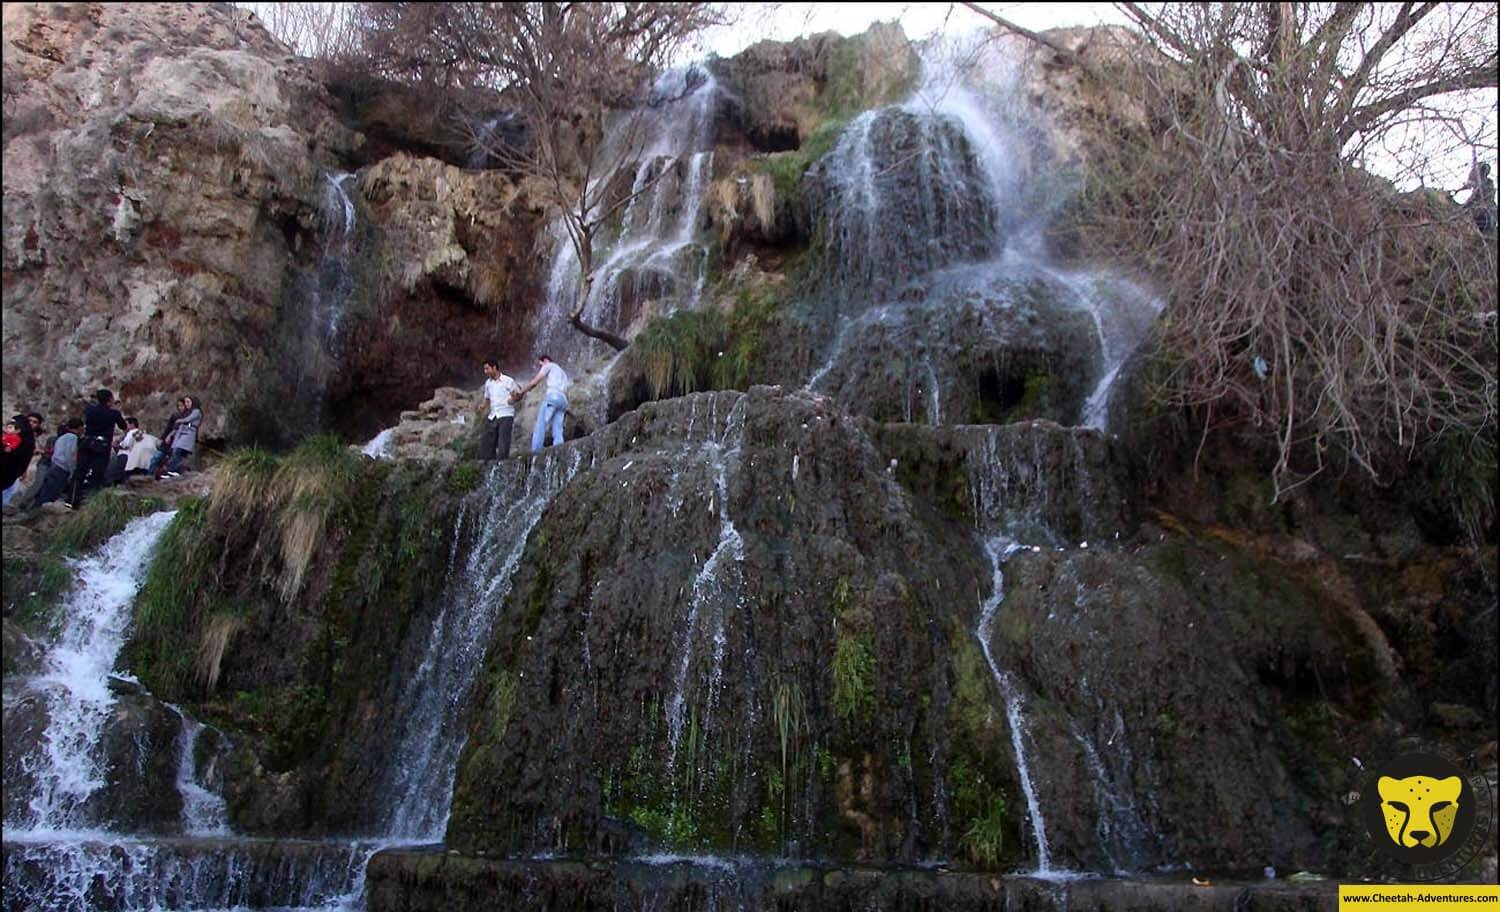 Niasar watelfall in kashan tour visit iran package cheetah adventures com